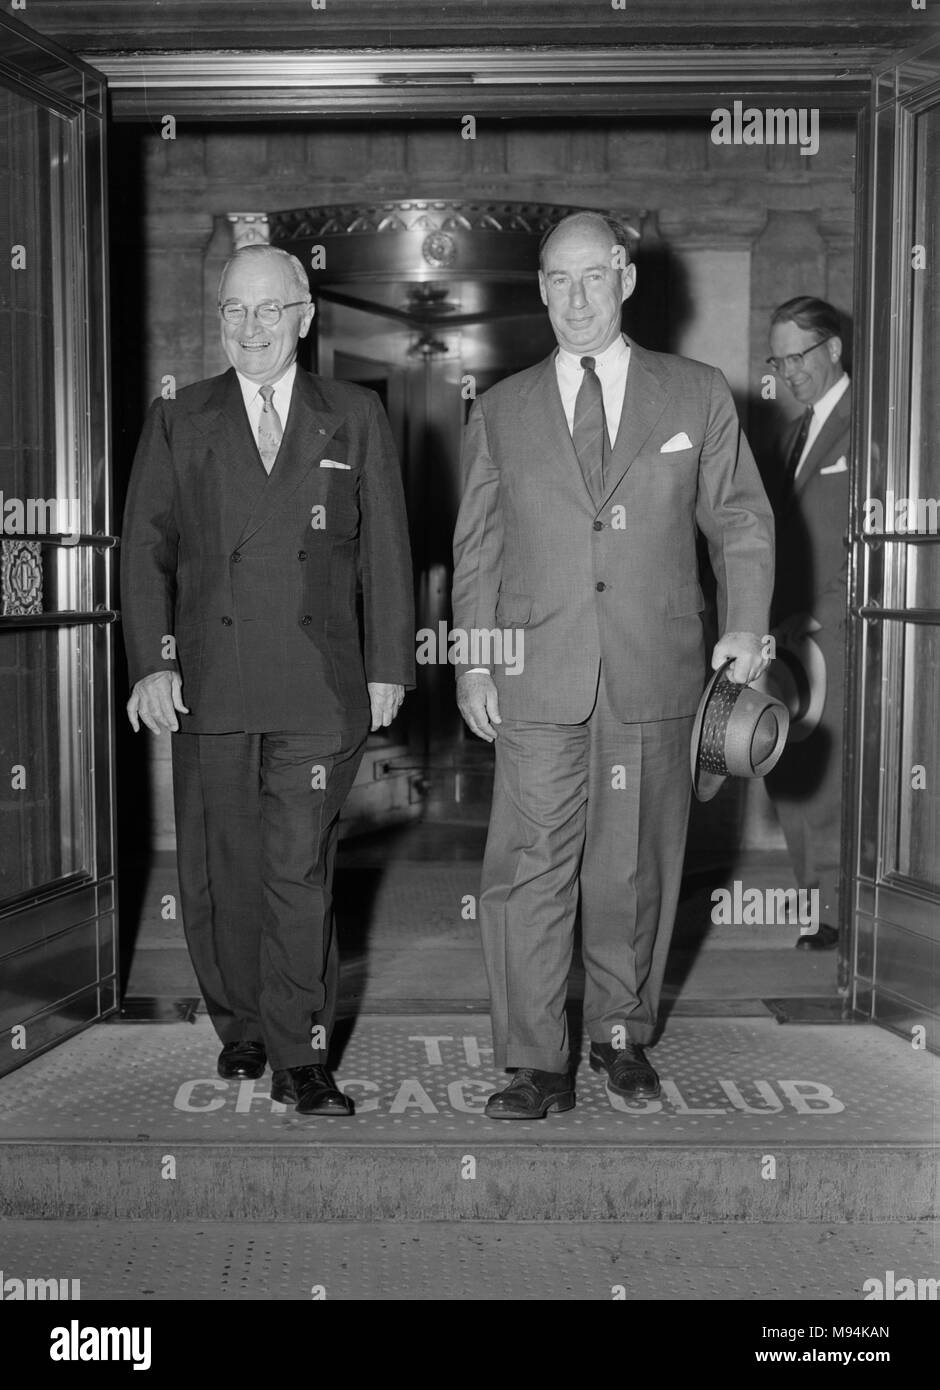 Former President Harry S. Truman and Presidential candidate Adlai Stevenson exit The Chicago Club after an appearance together in 1956. Stock Photo